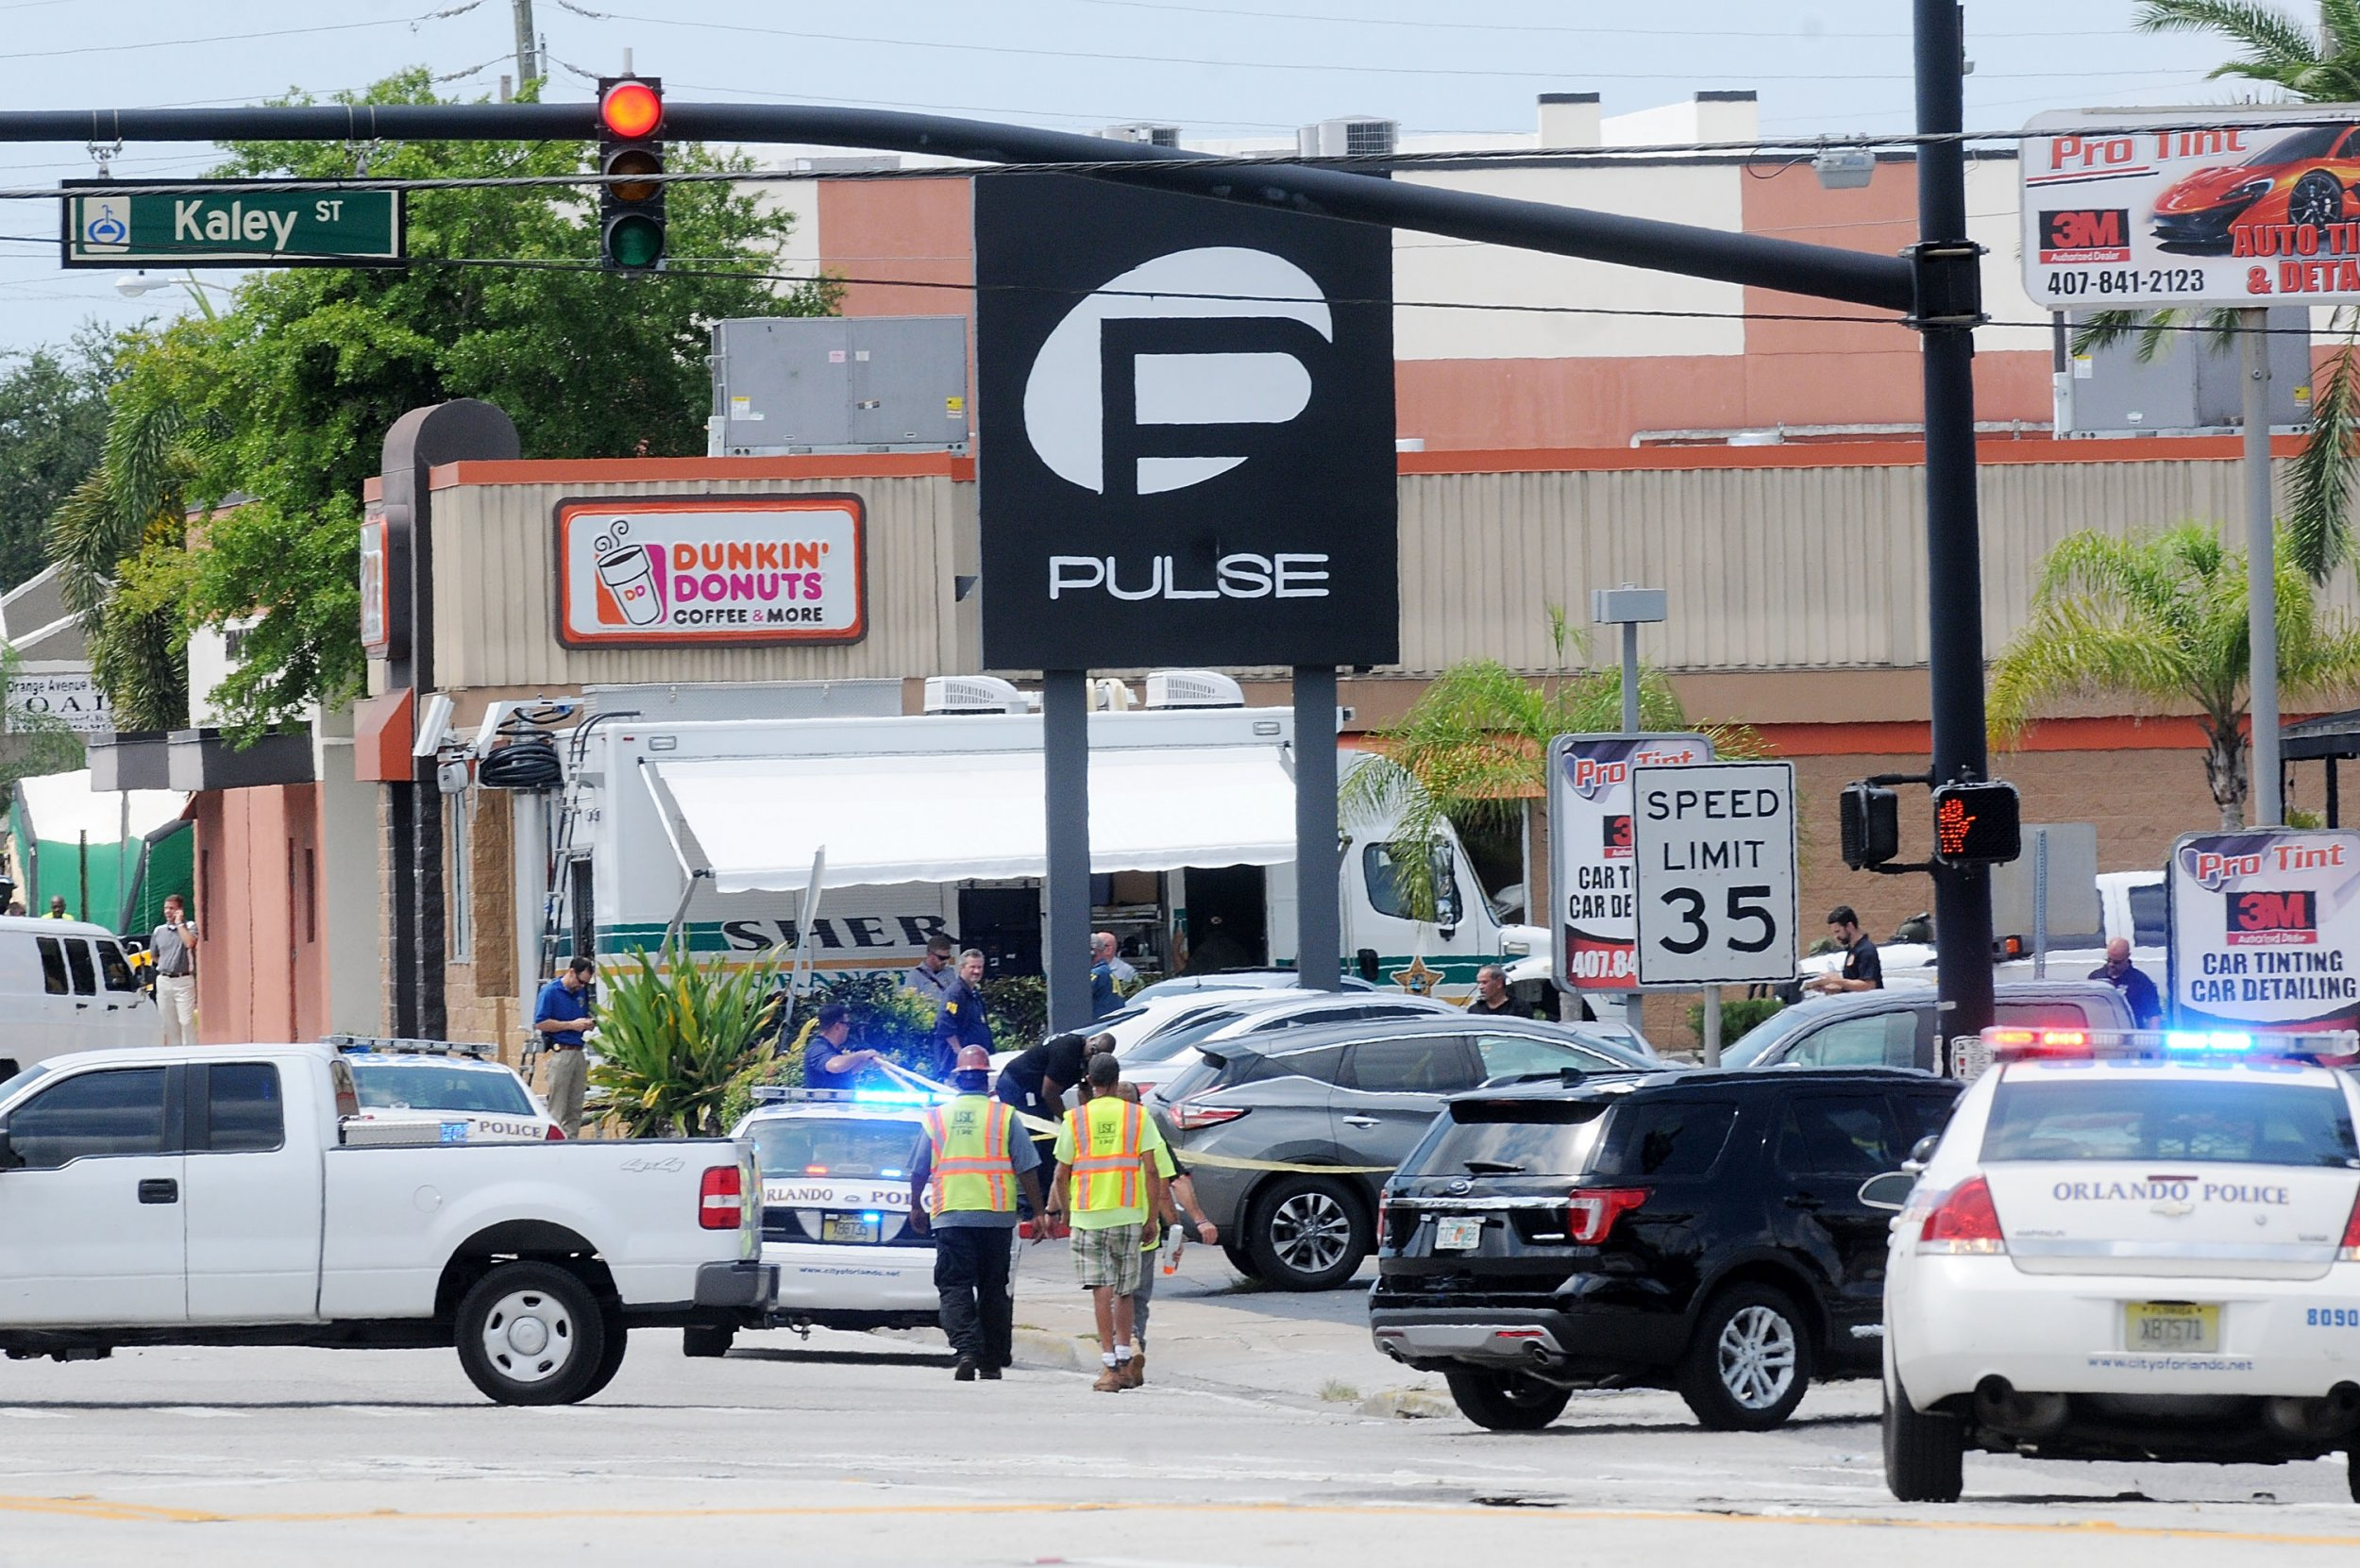 Pulse nightclub in Orlando, Florida